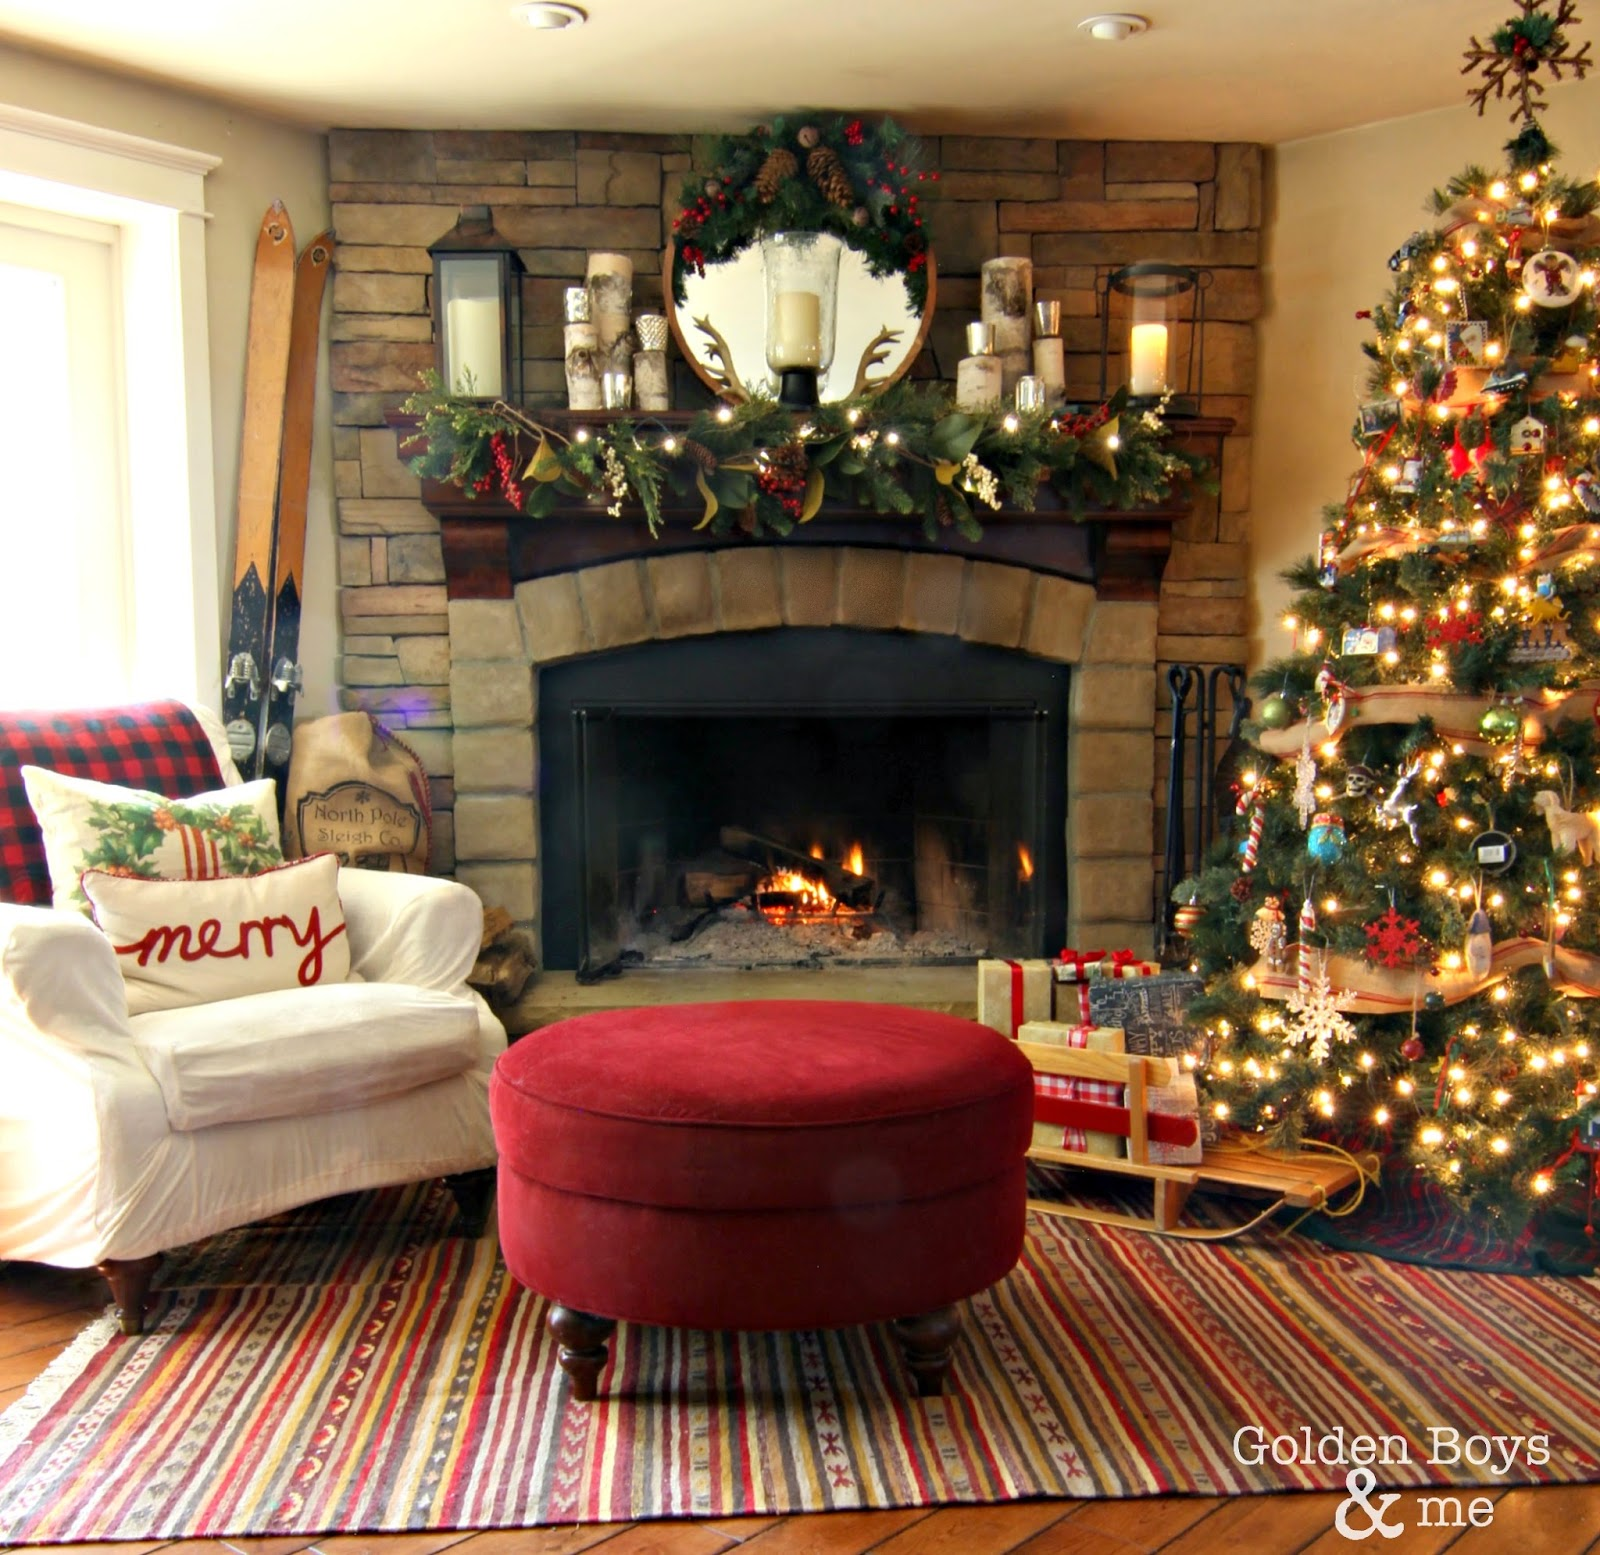 Rustic family room with stone fireplace and lodge style Christmas decor-www.goldenboysandme.com